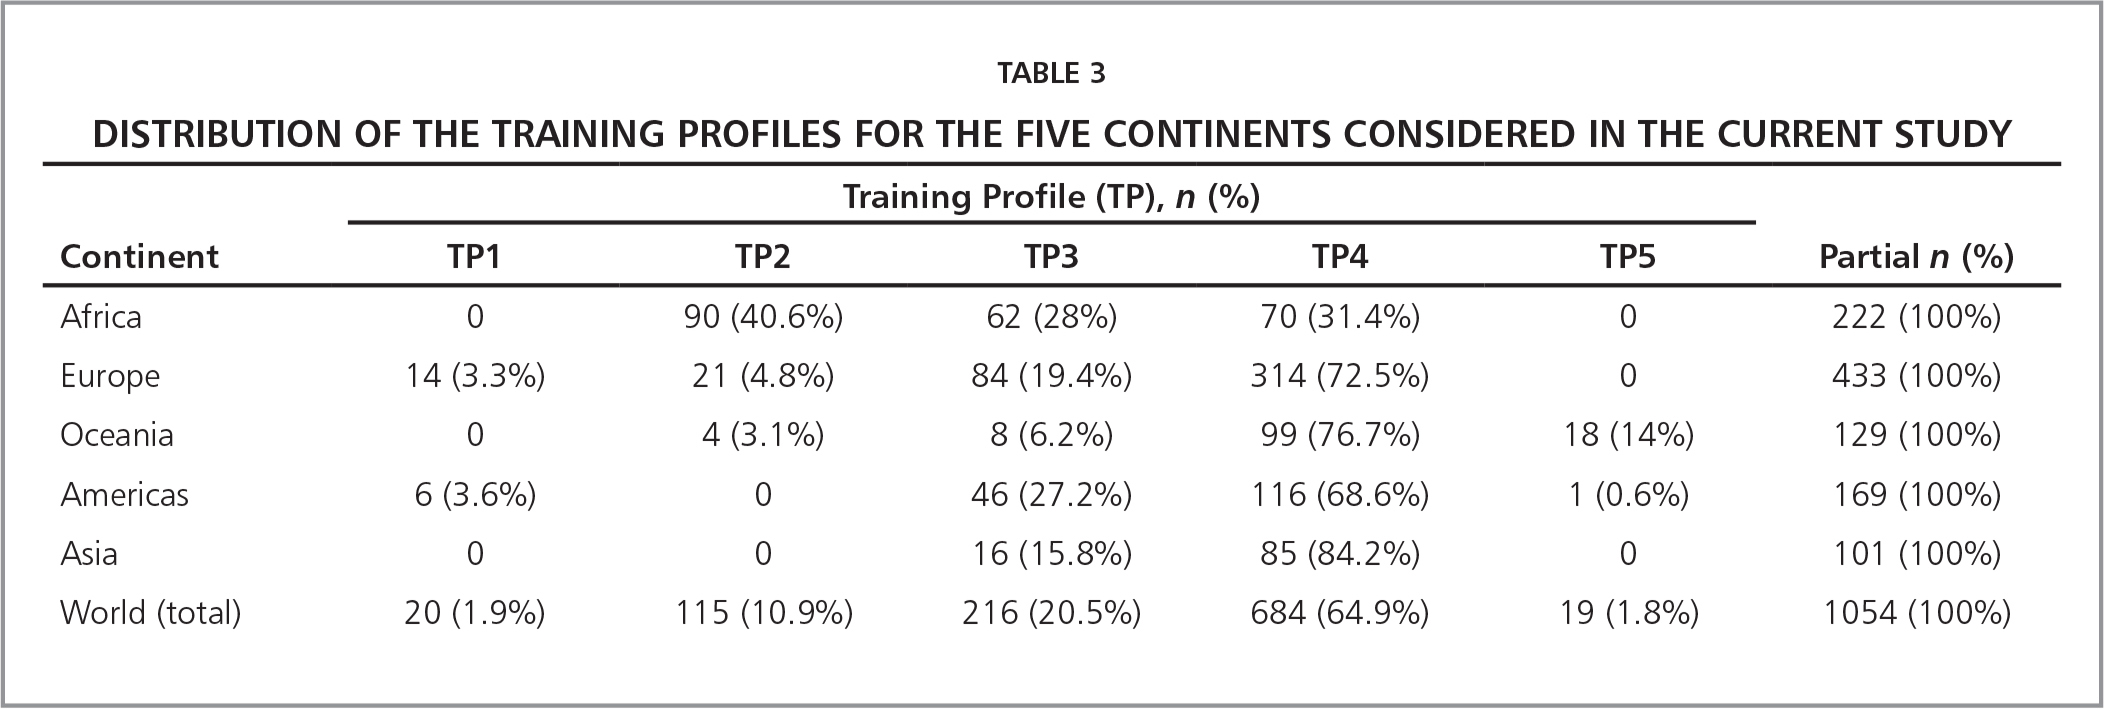 Distribution of the Training Profiles for the Five Continents Considered in the Current Study